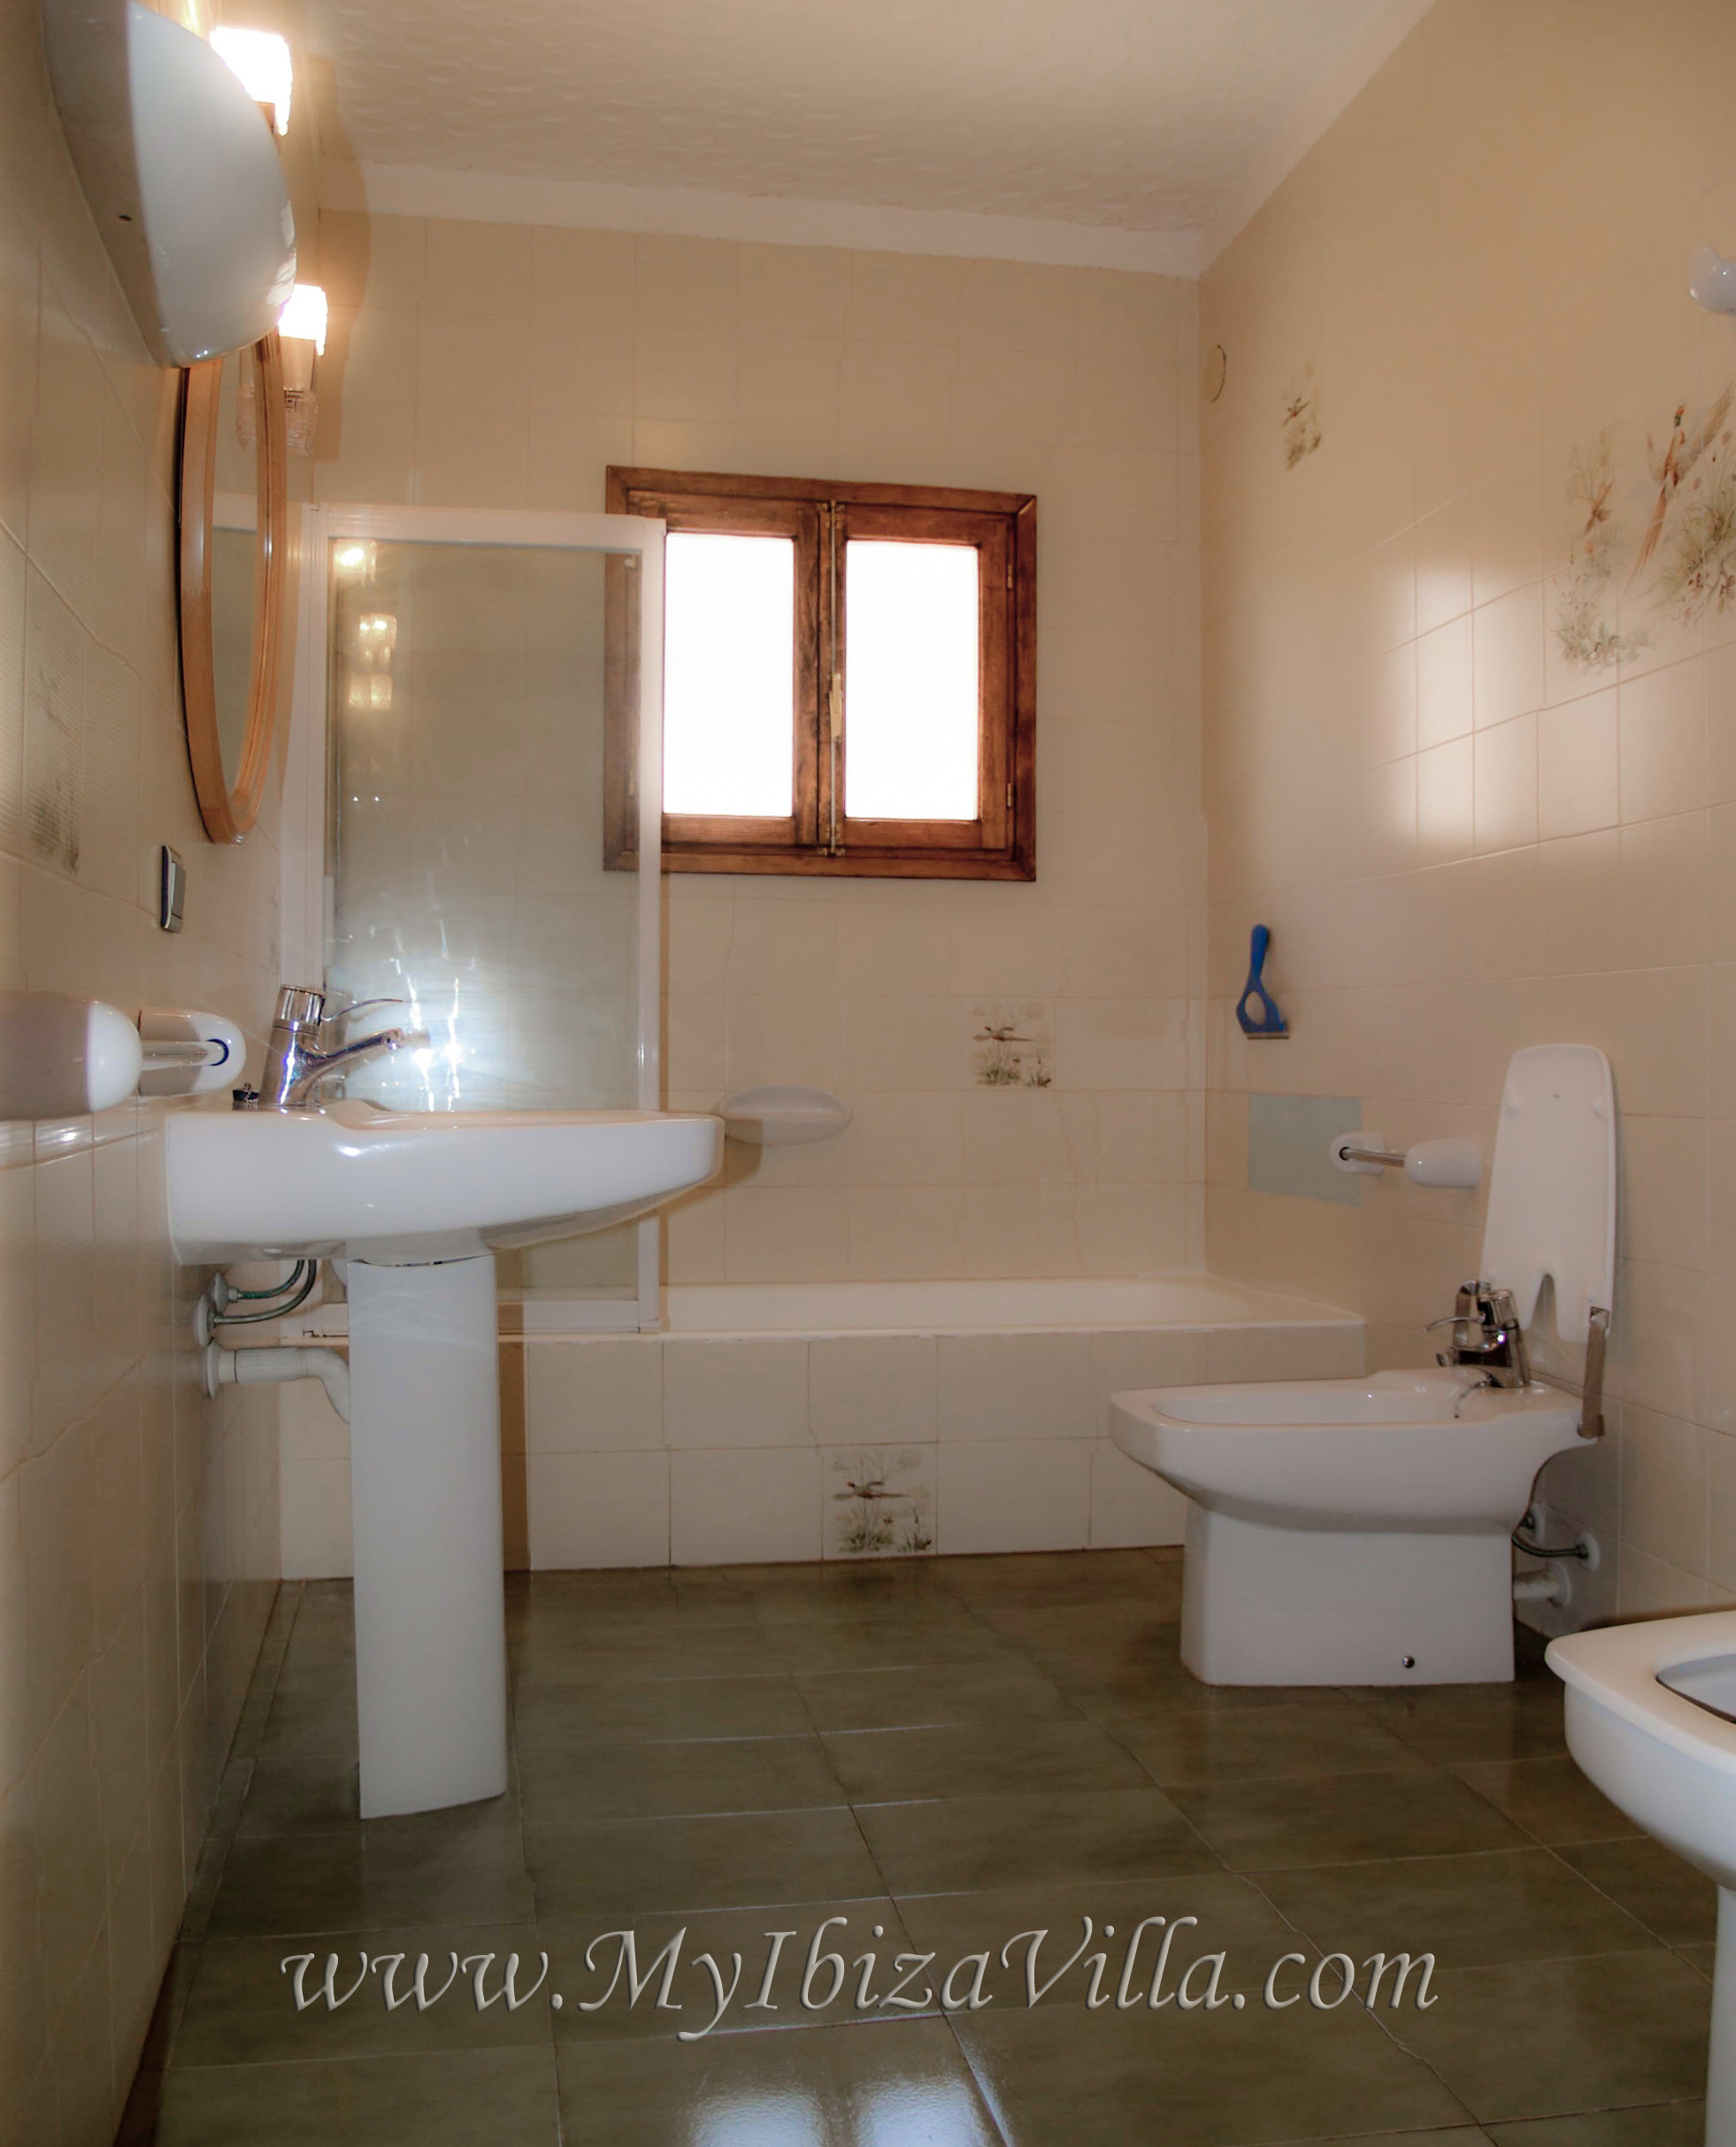 Heated bathroom with bath/shower, wc, bidet and sink of this Spain villa.